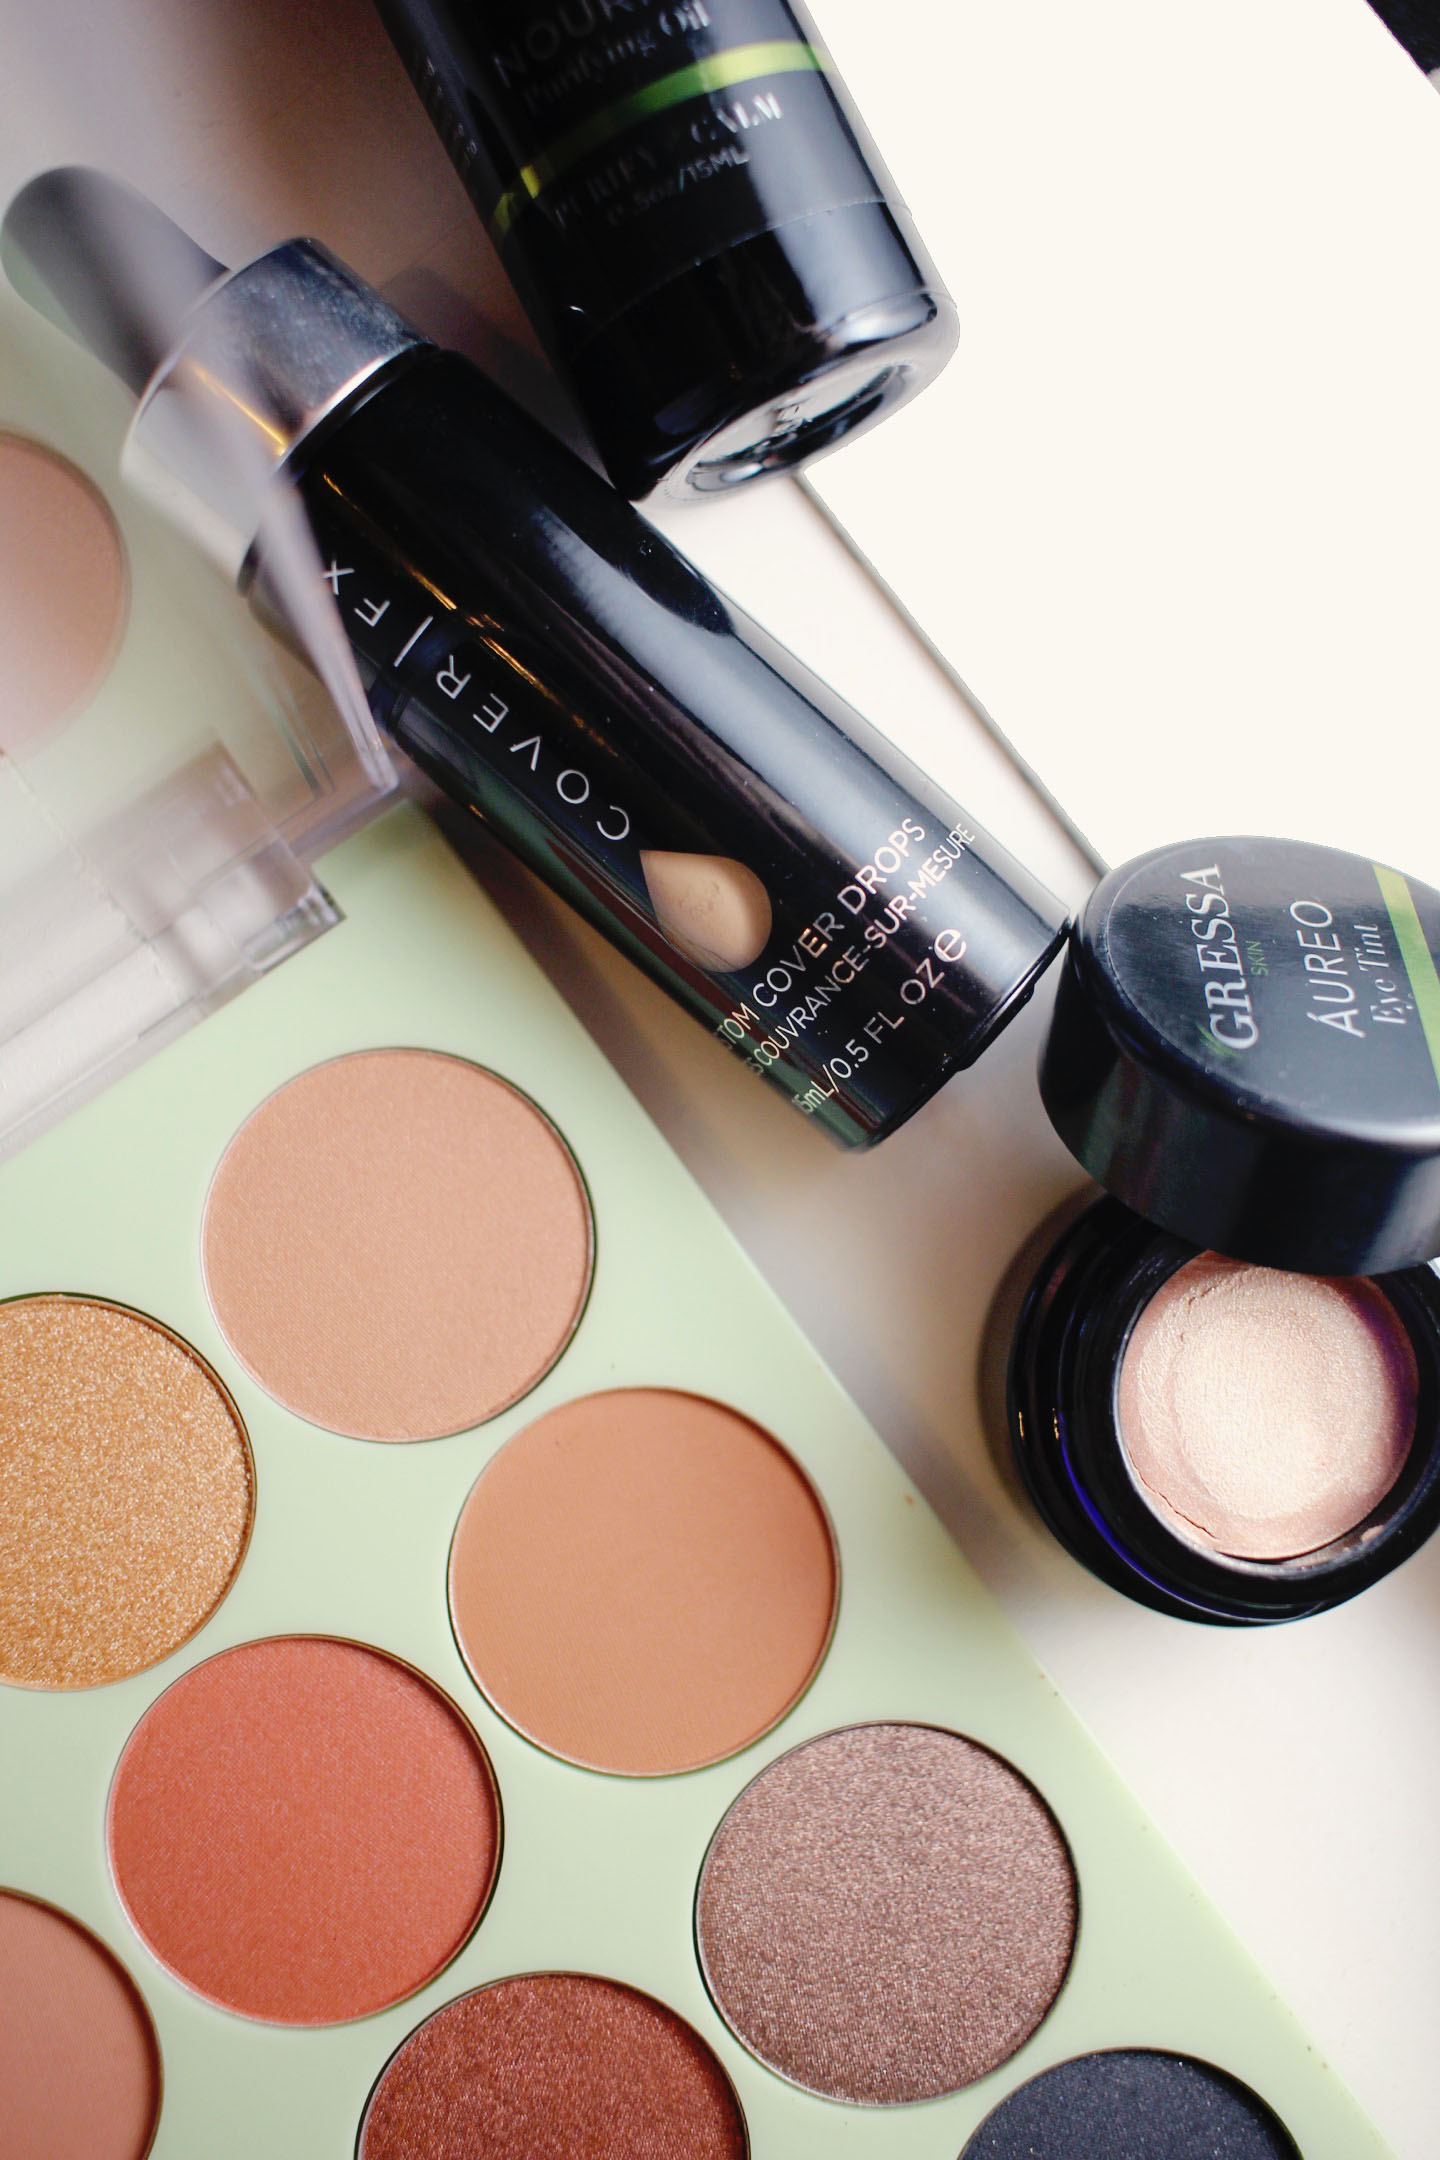 Beauty Products That Go Together